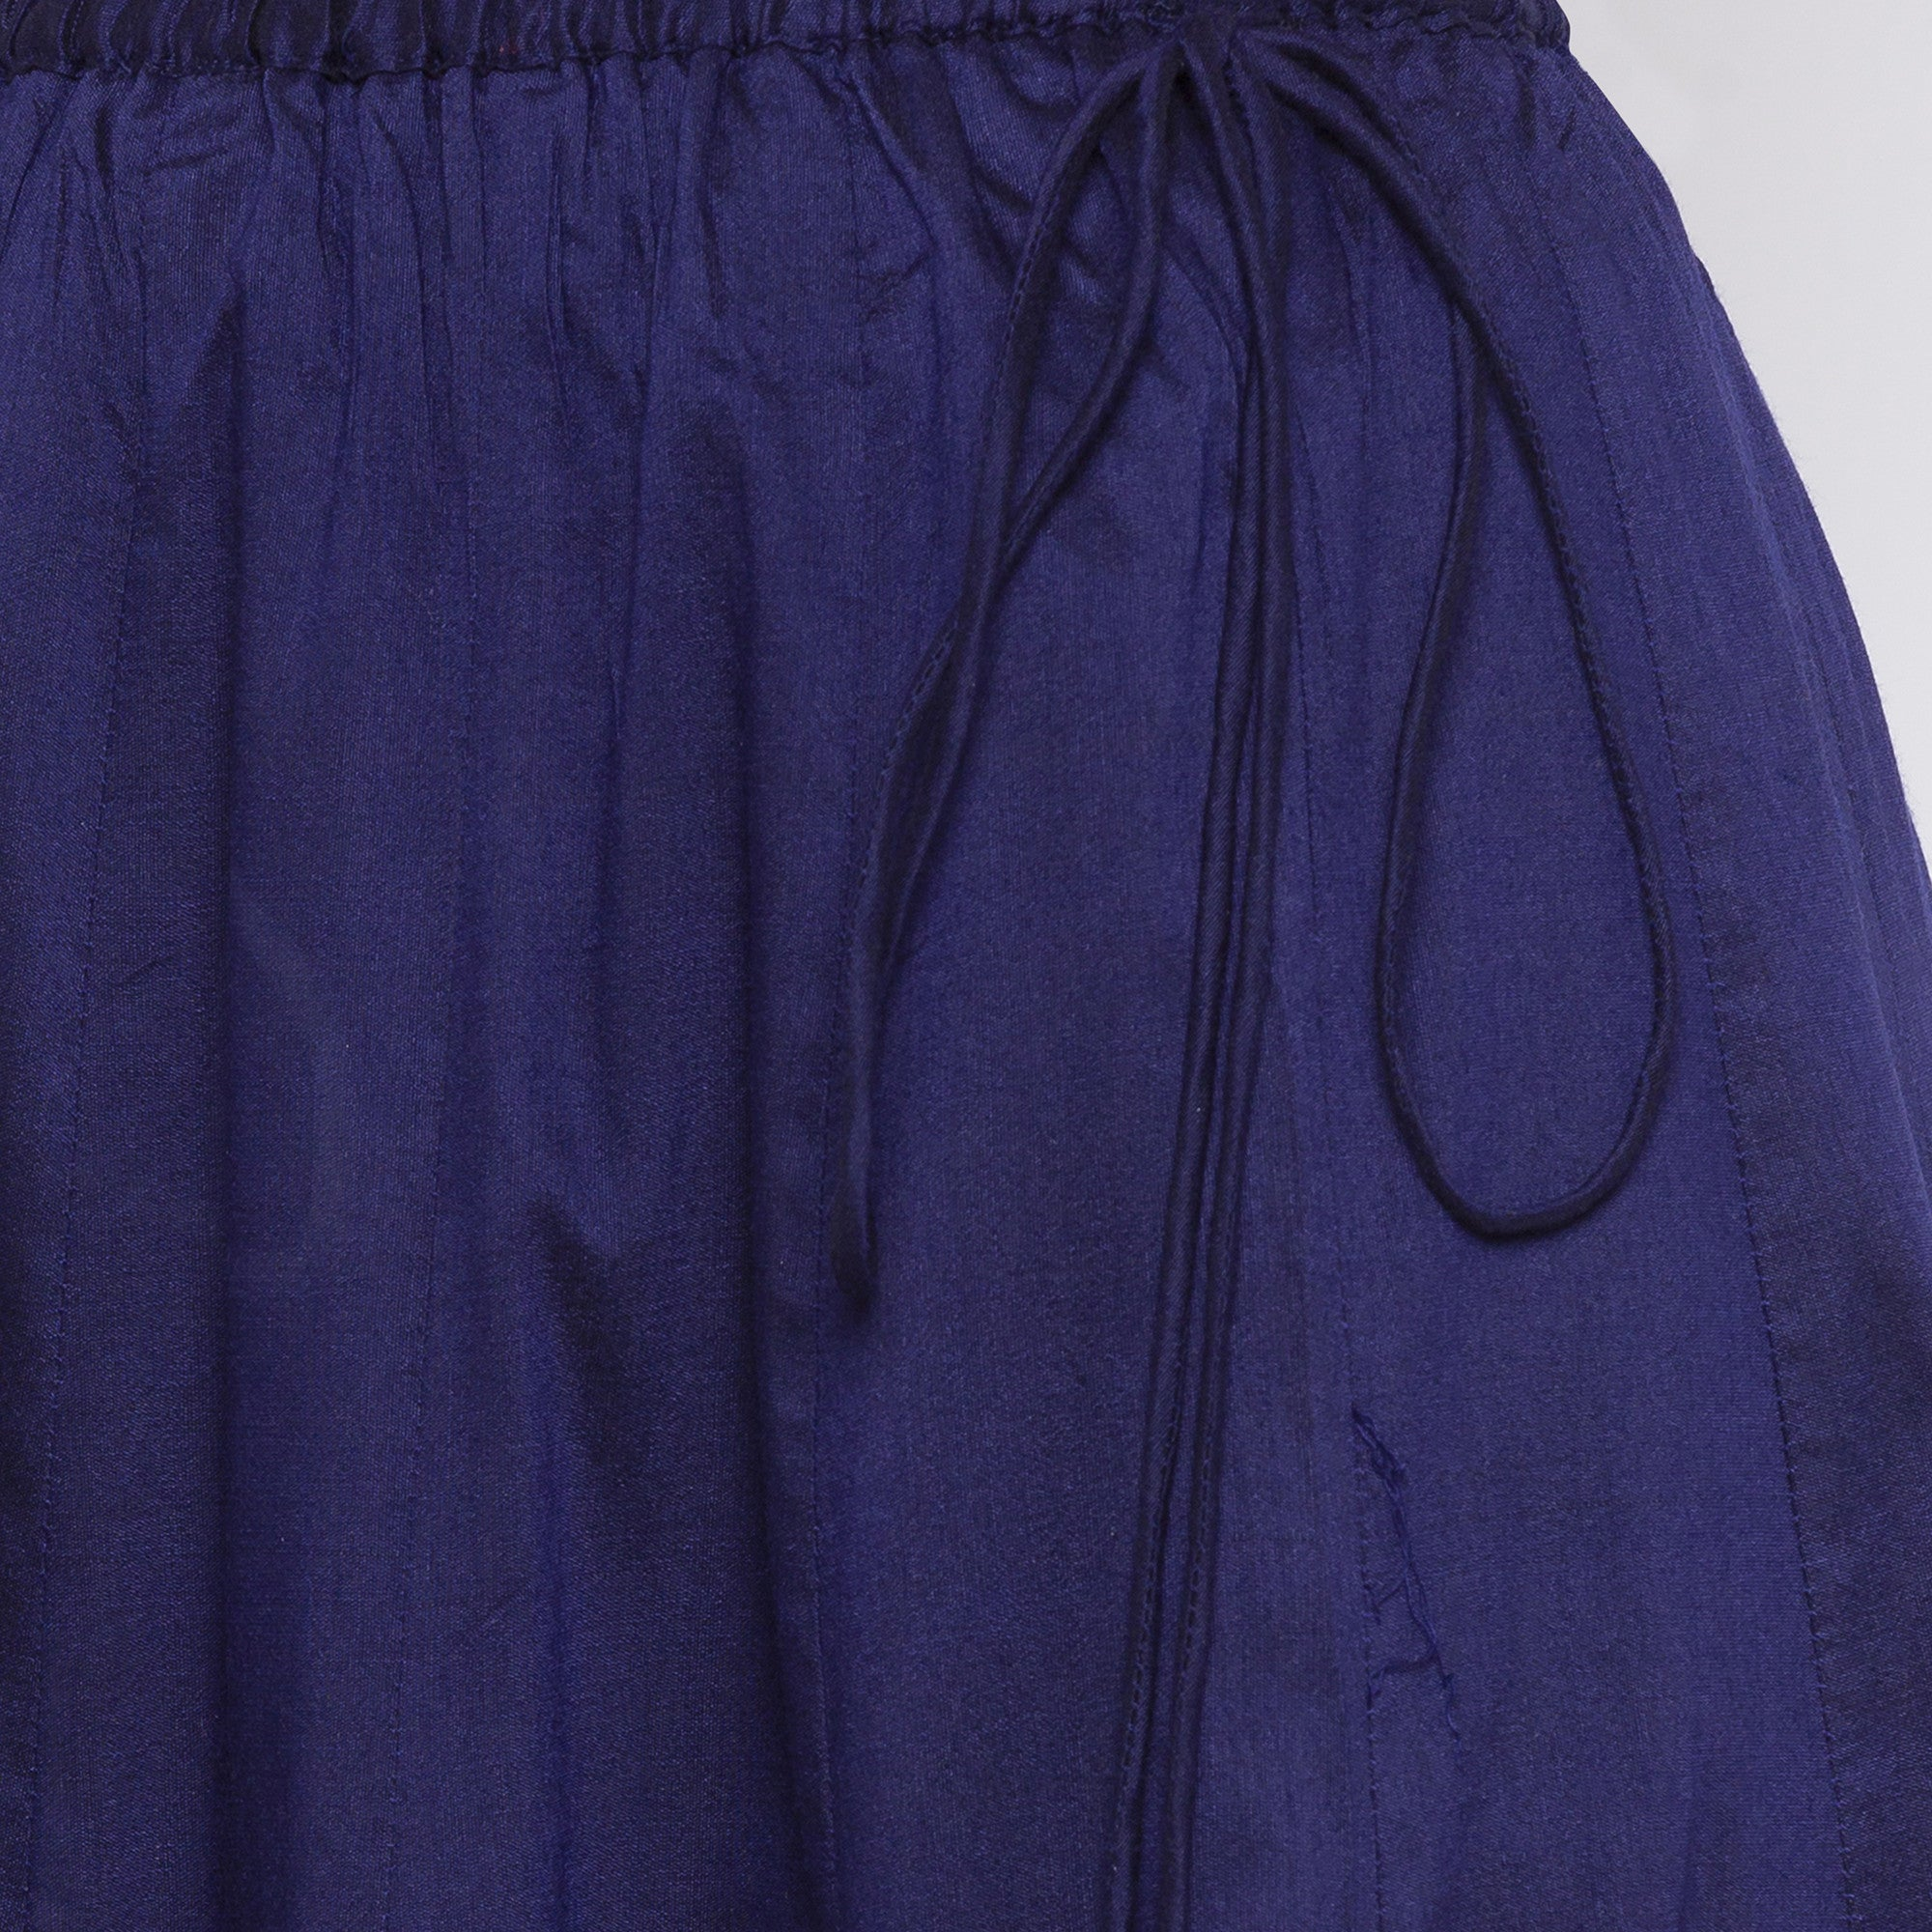 Indigo Solid Skirts-5